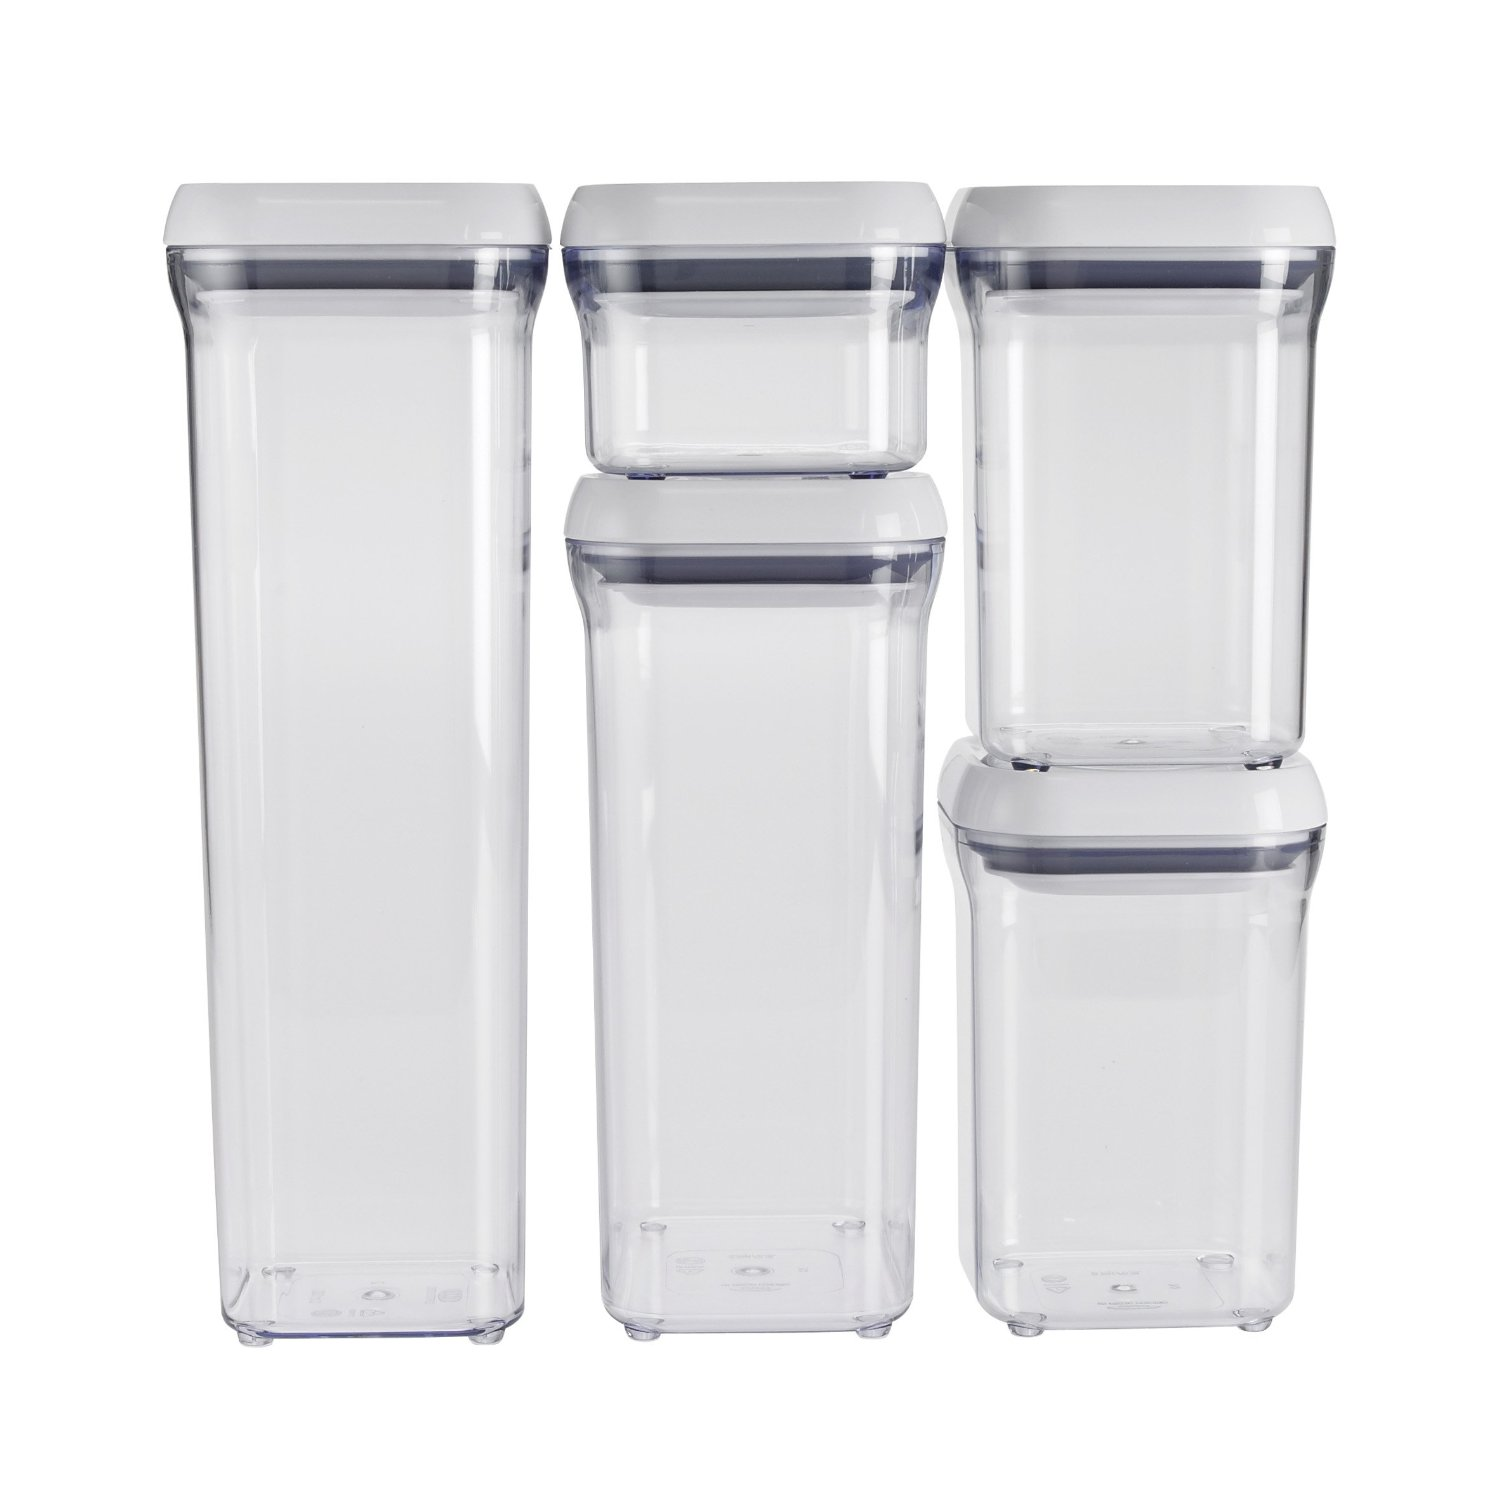 OXO Good Grips 5-Piece POP Container Set, White: Kitchen Storage And Organization Product Sets